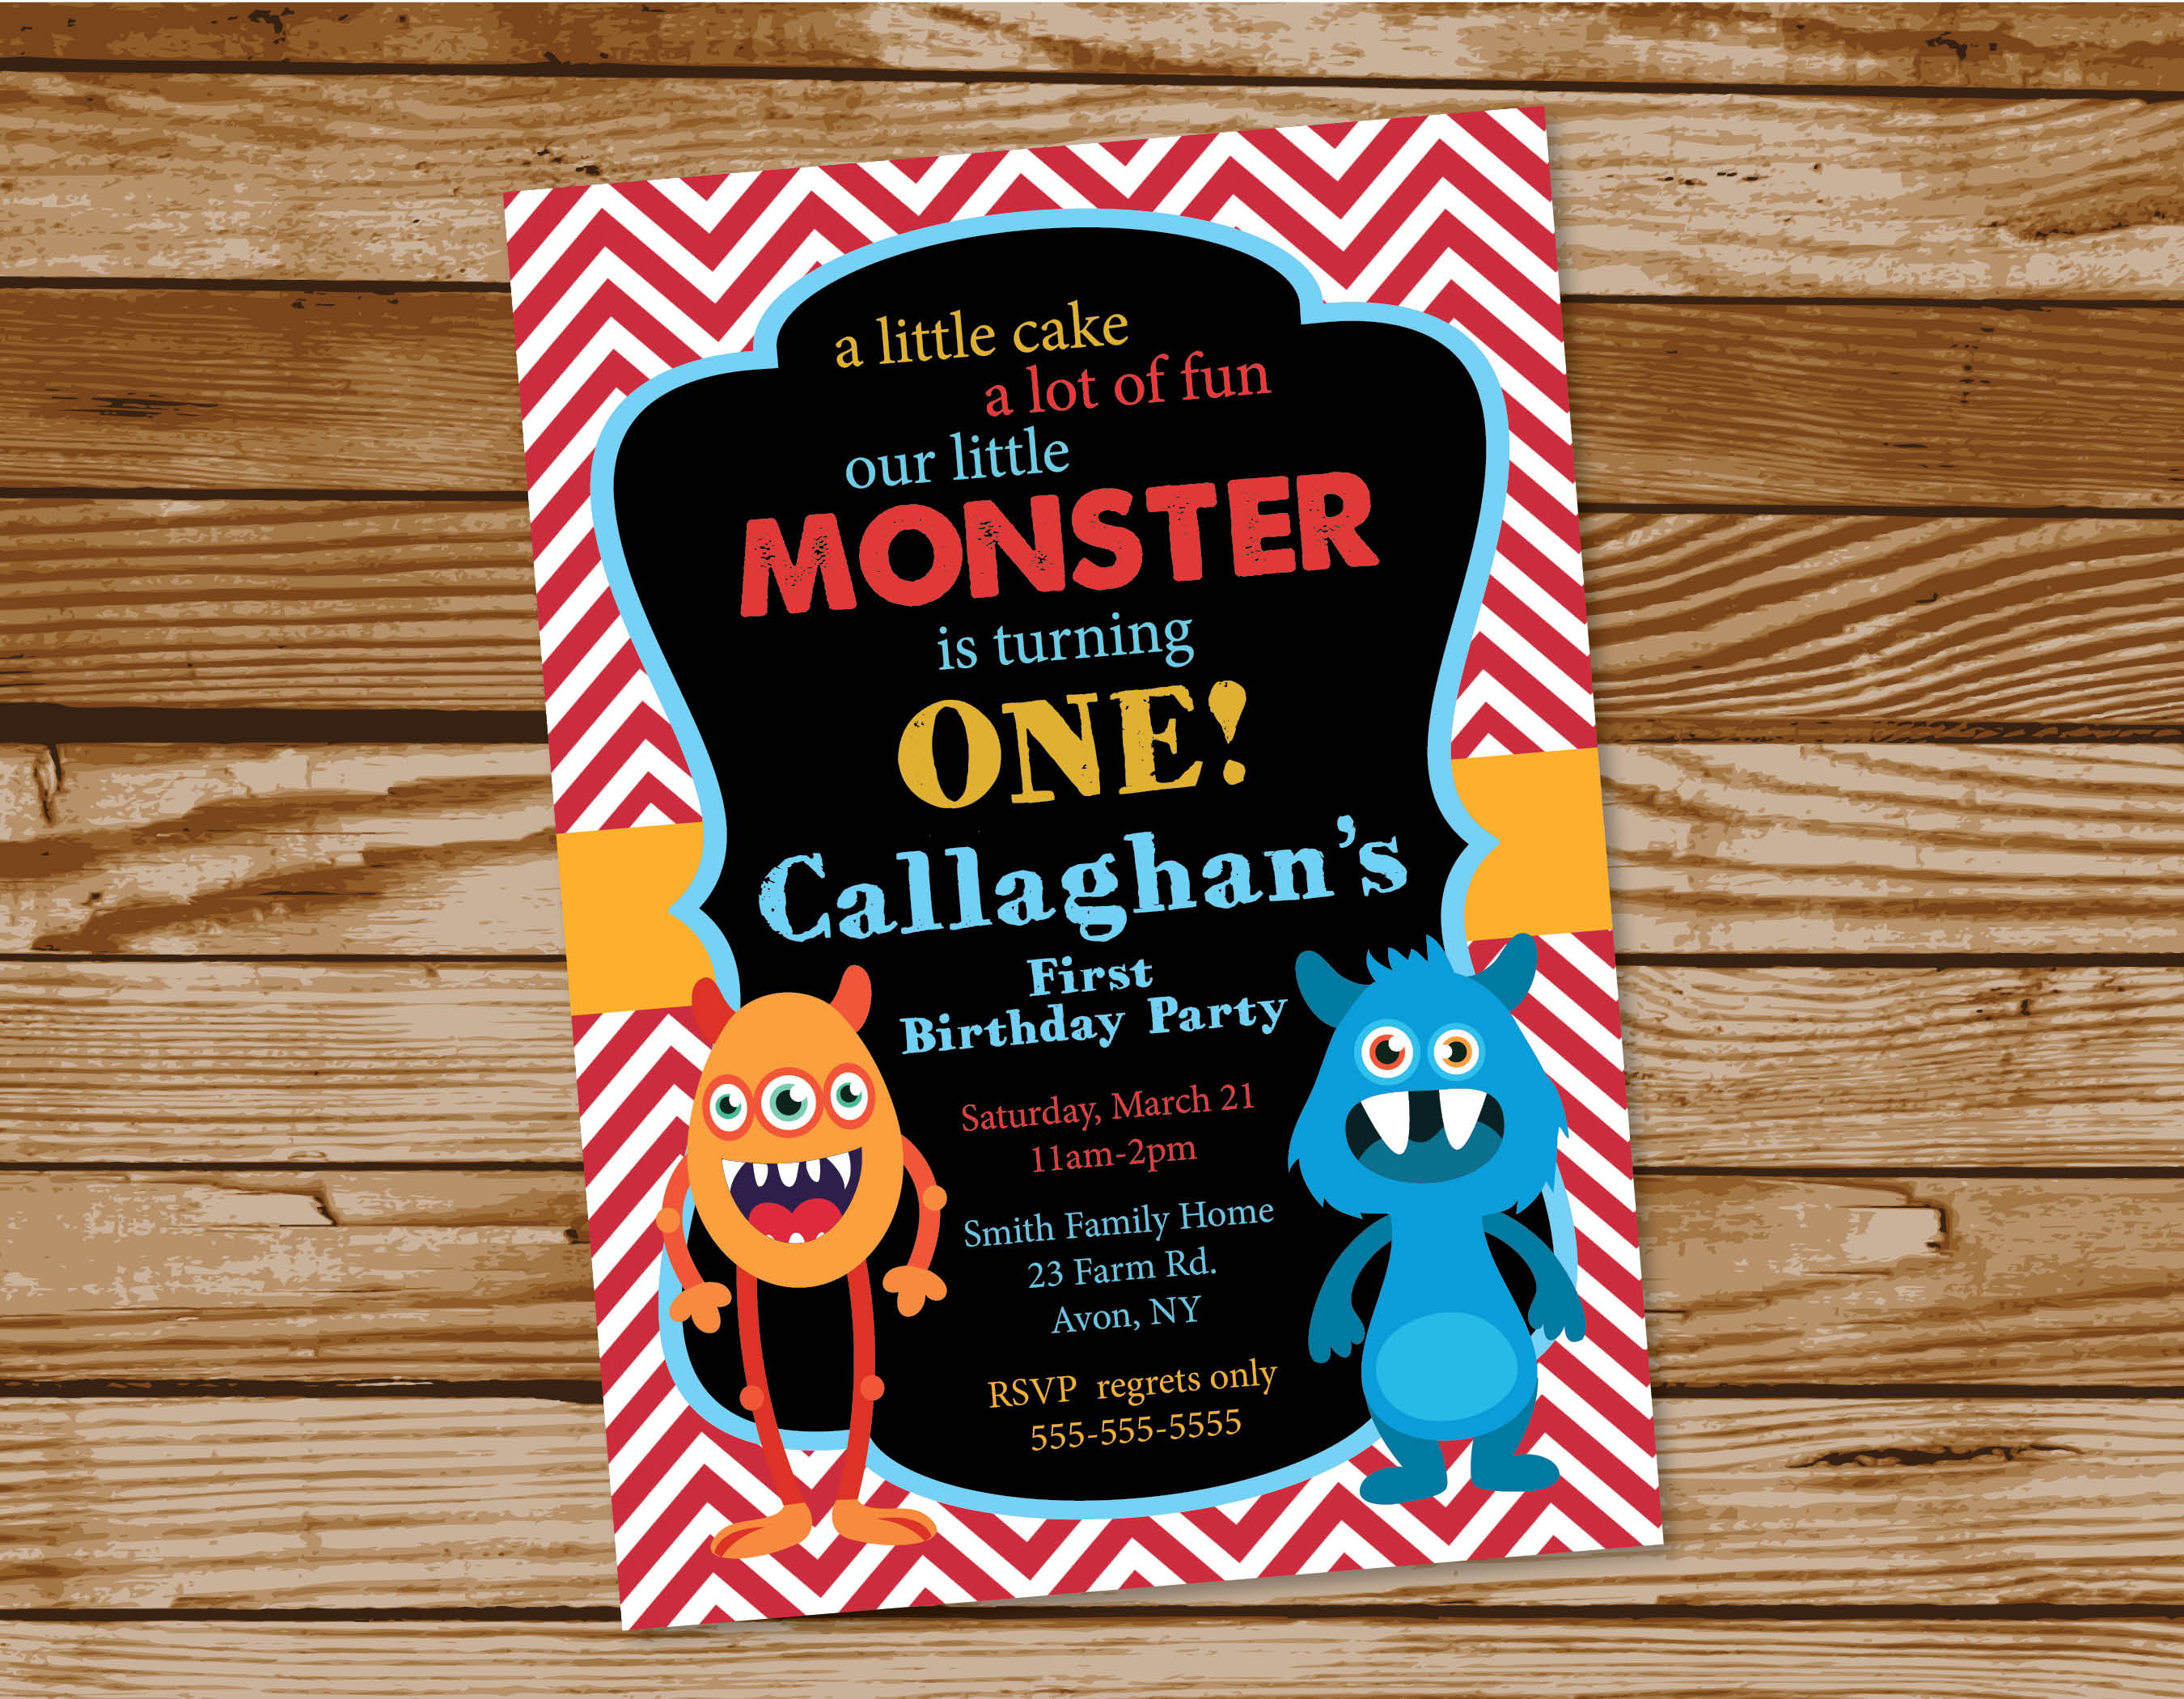 Monster Themed Birthday Party Invitations – PRINTING by Penny Lane